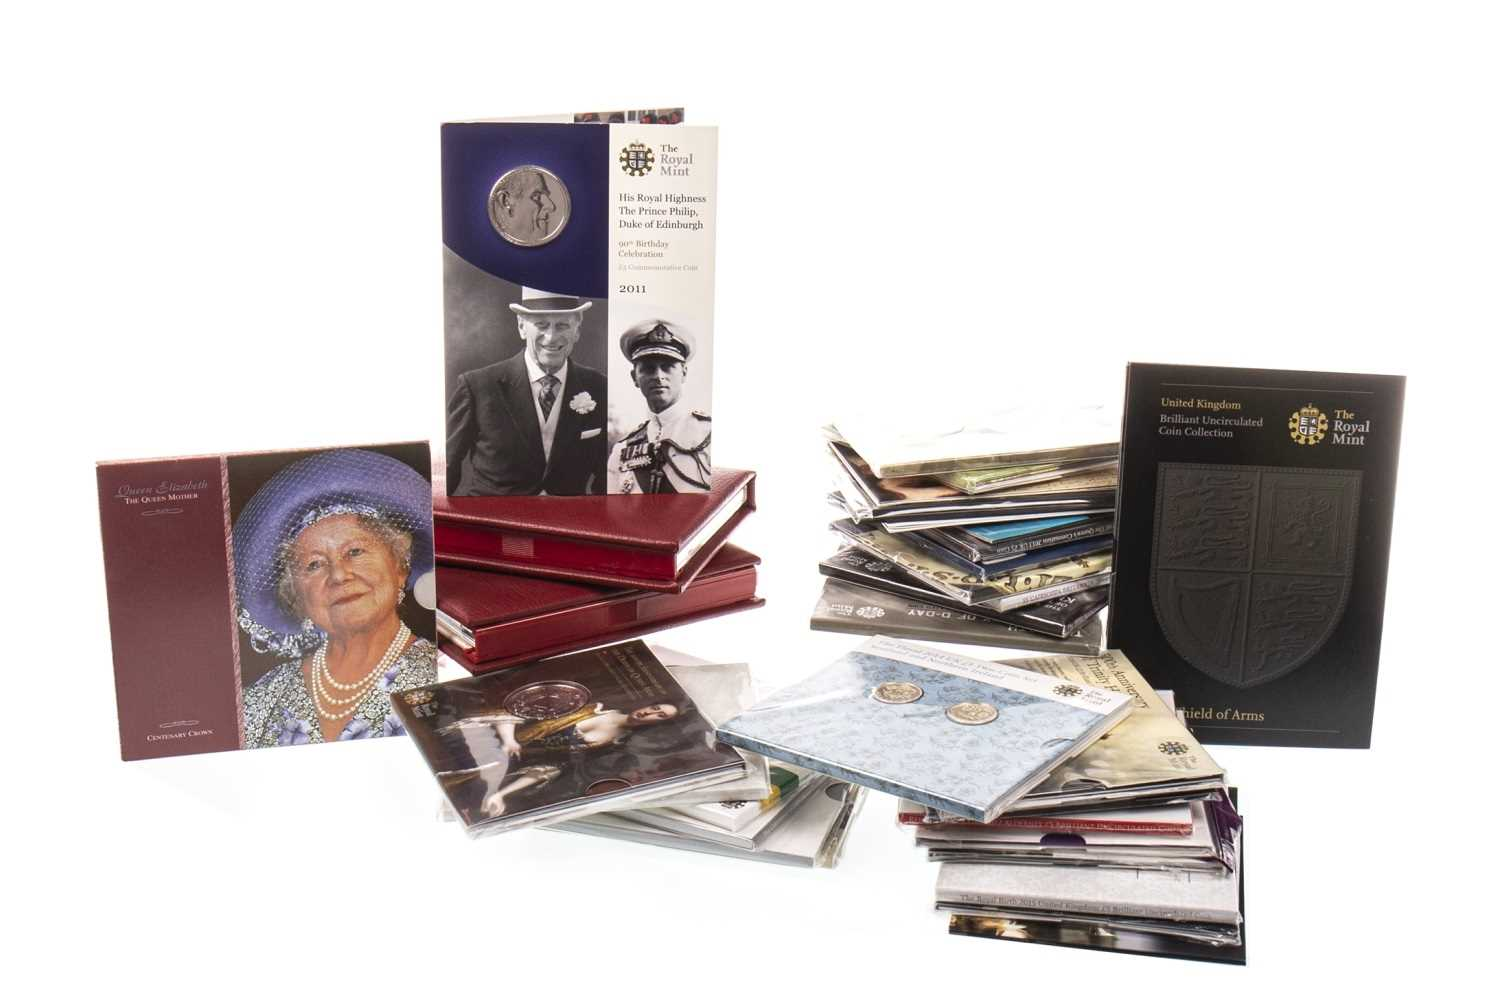 Lot 576-A LARGE COLLECTION OF VARIOUS UK COMMEMORATIVE AND COLLECTIBLE COINS